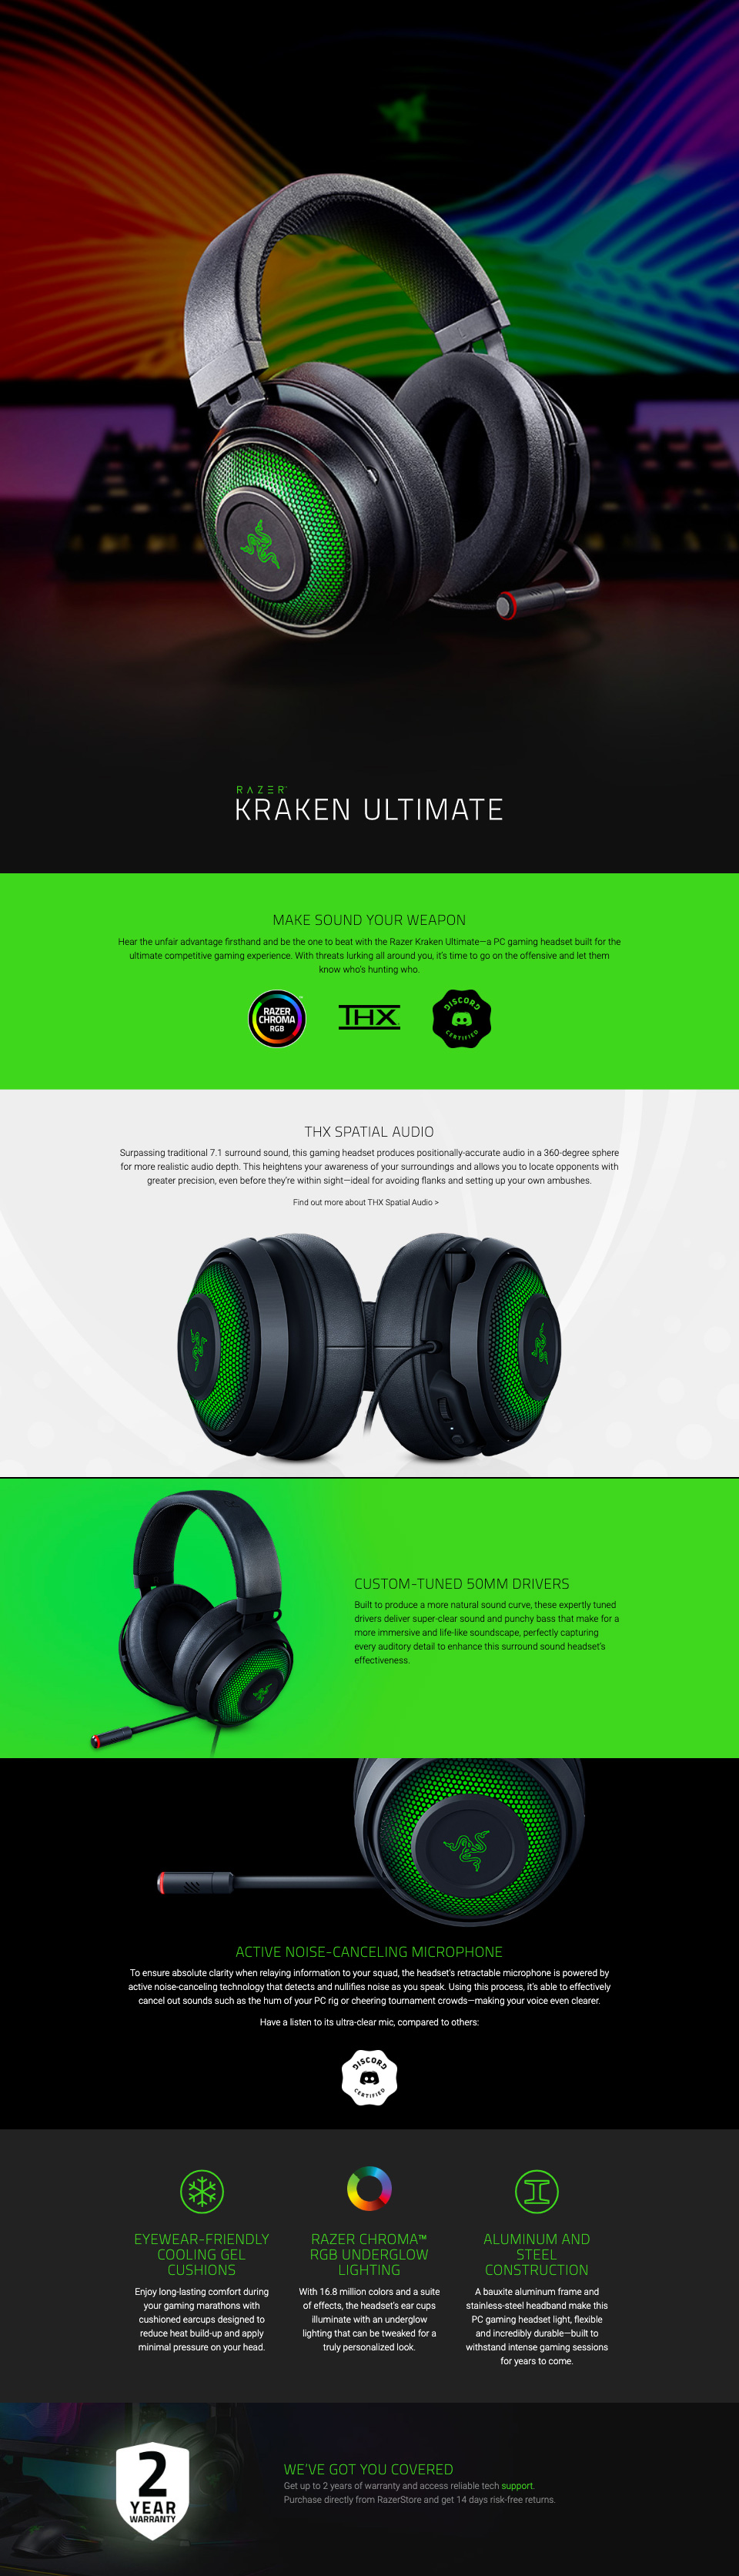 Razer Kraken Ultimate Gaming Headset features